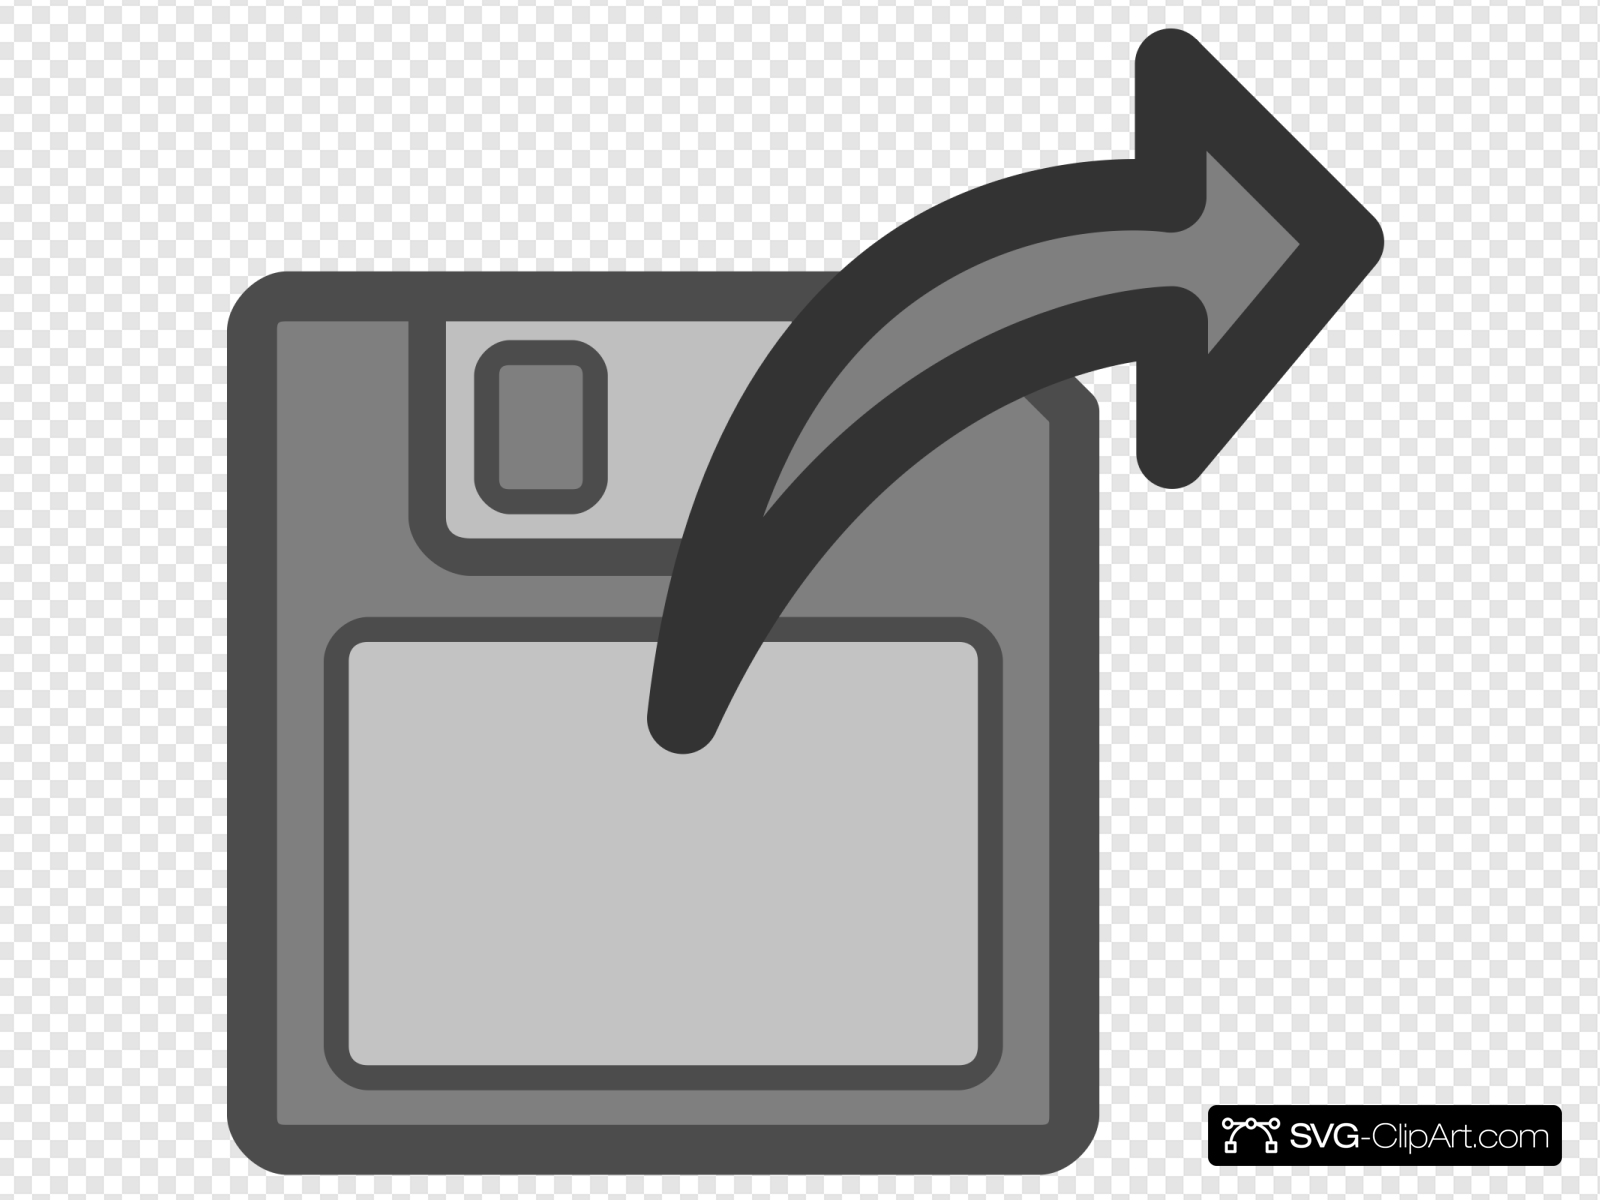 Export File Clip art, Icon and SVG.